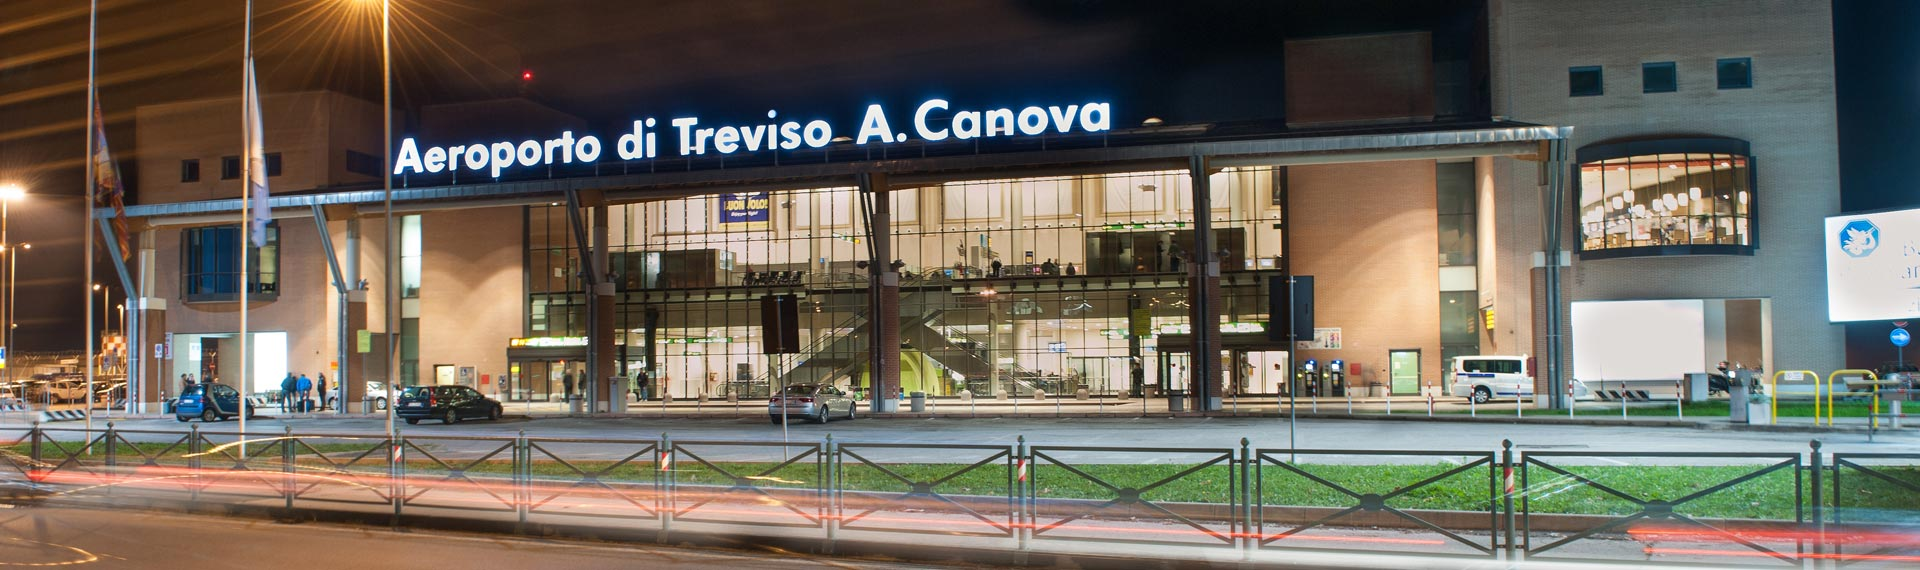 Treviso Airport Venice Italy Airport